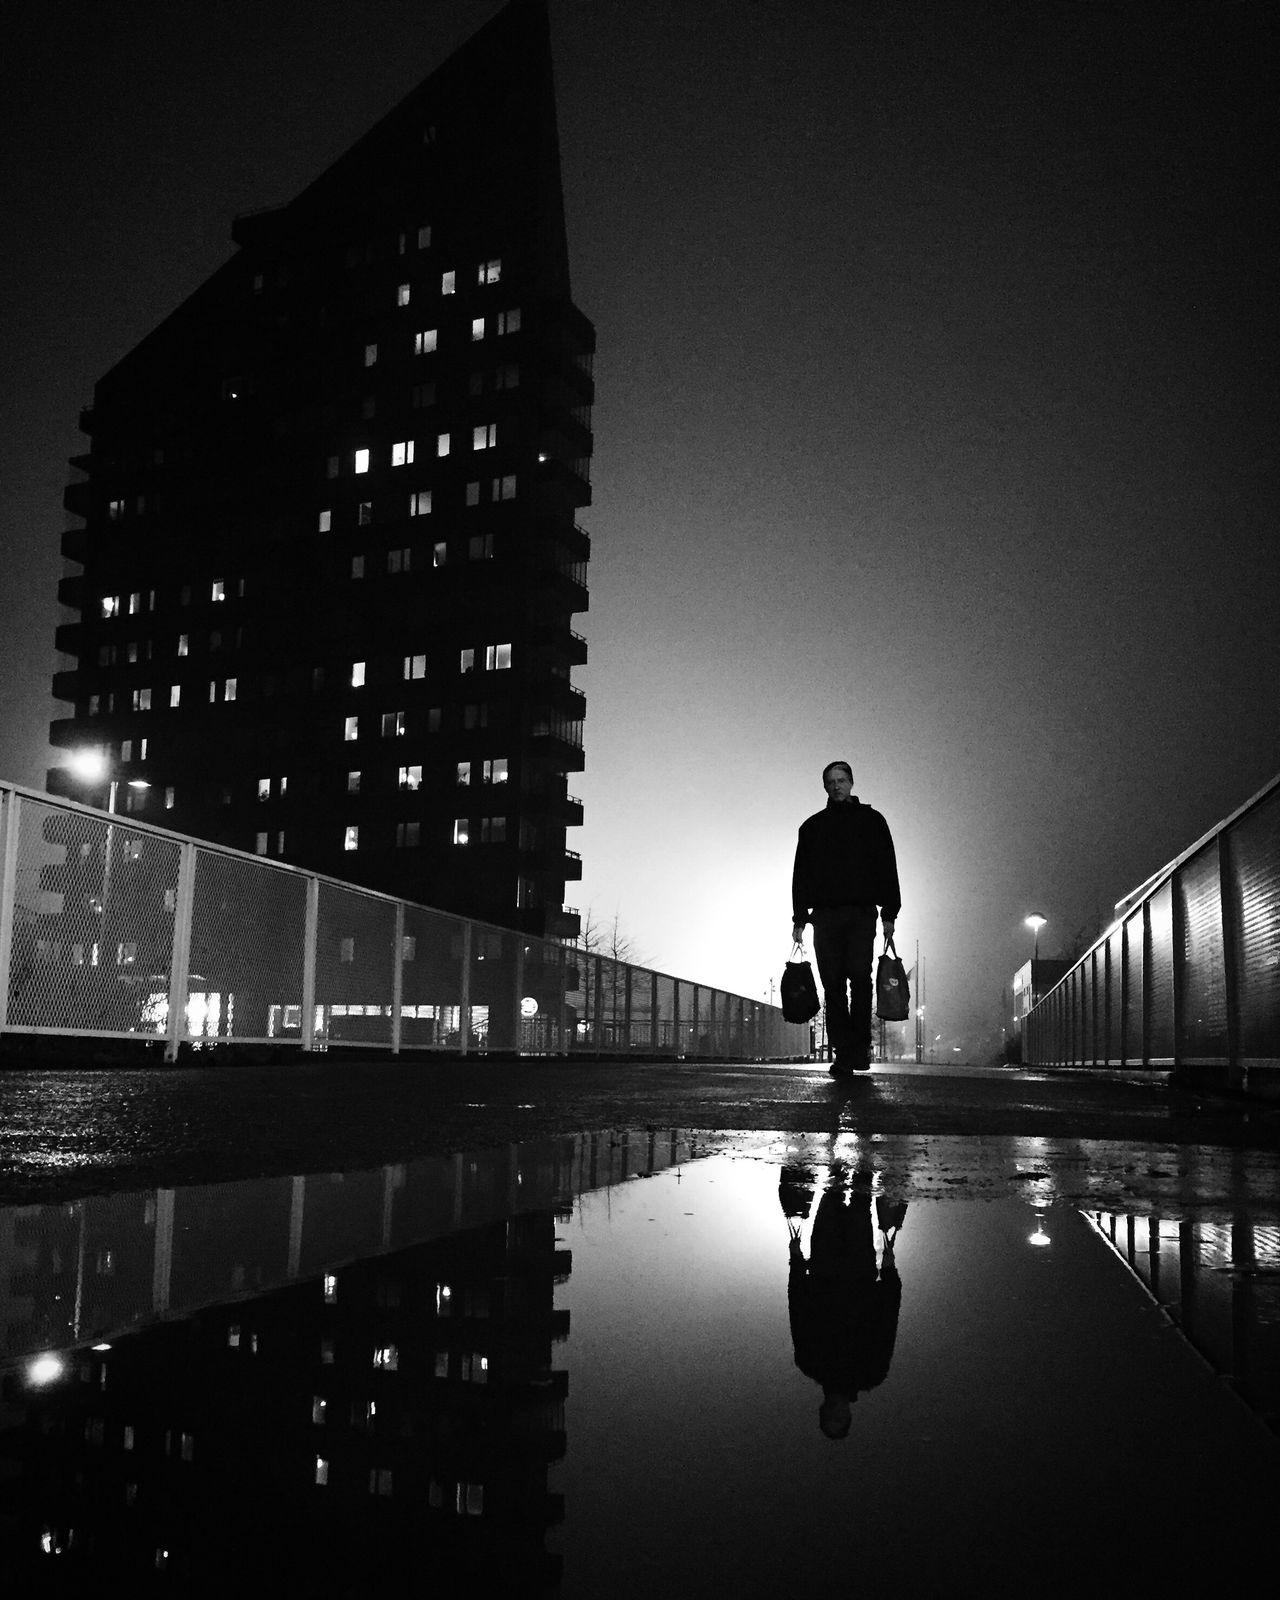 Reflection Architecture City Shootermag Bw_collection Street Photography Darkness And Light City Monochrome Black And White